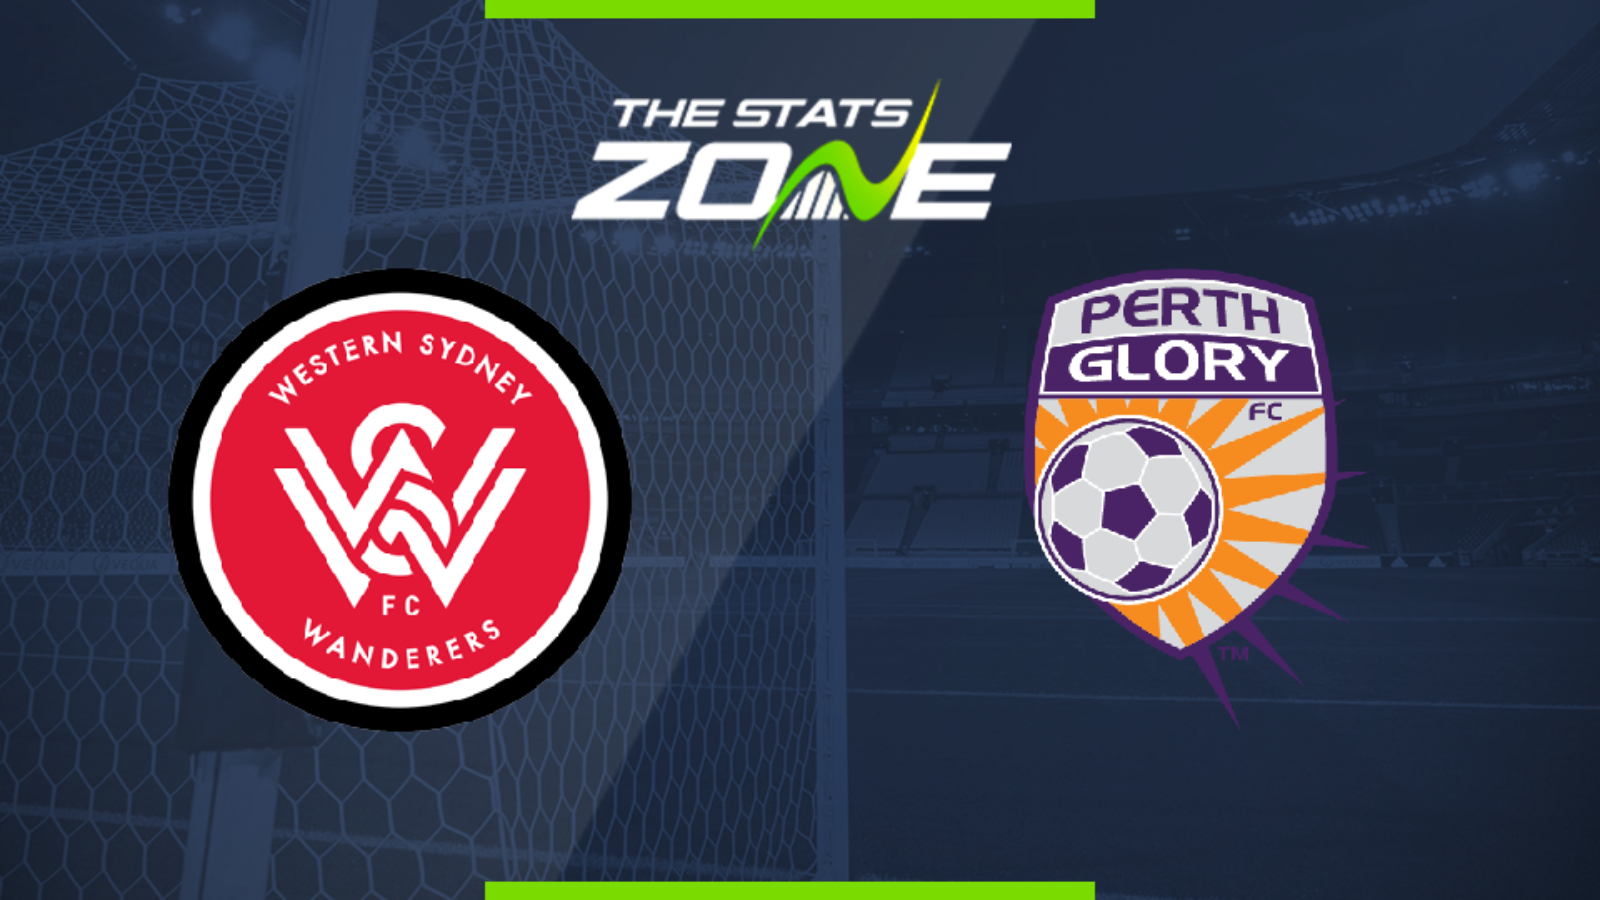 Perth glory vs western sydney betting preview betting zone horse tips for beginners